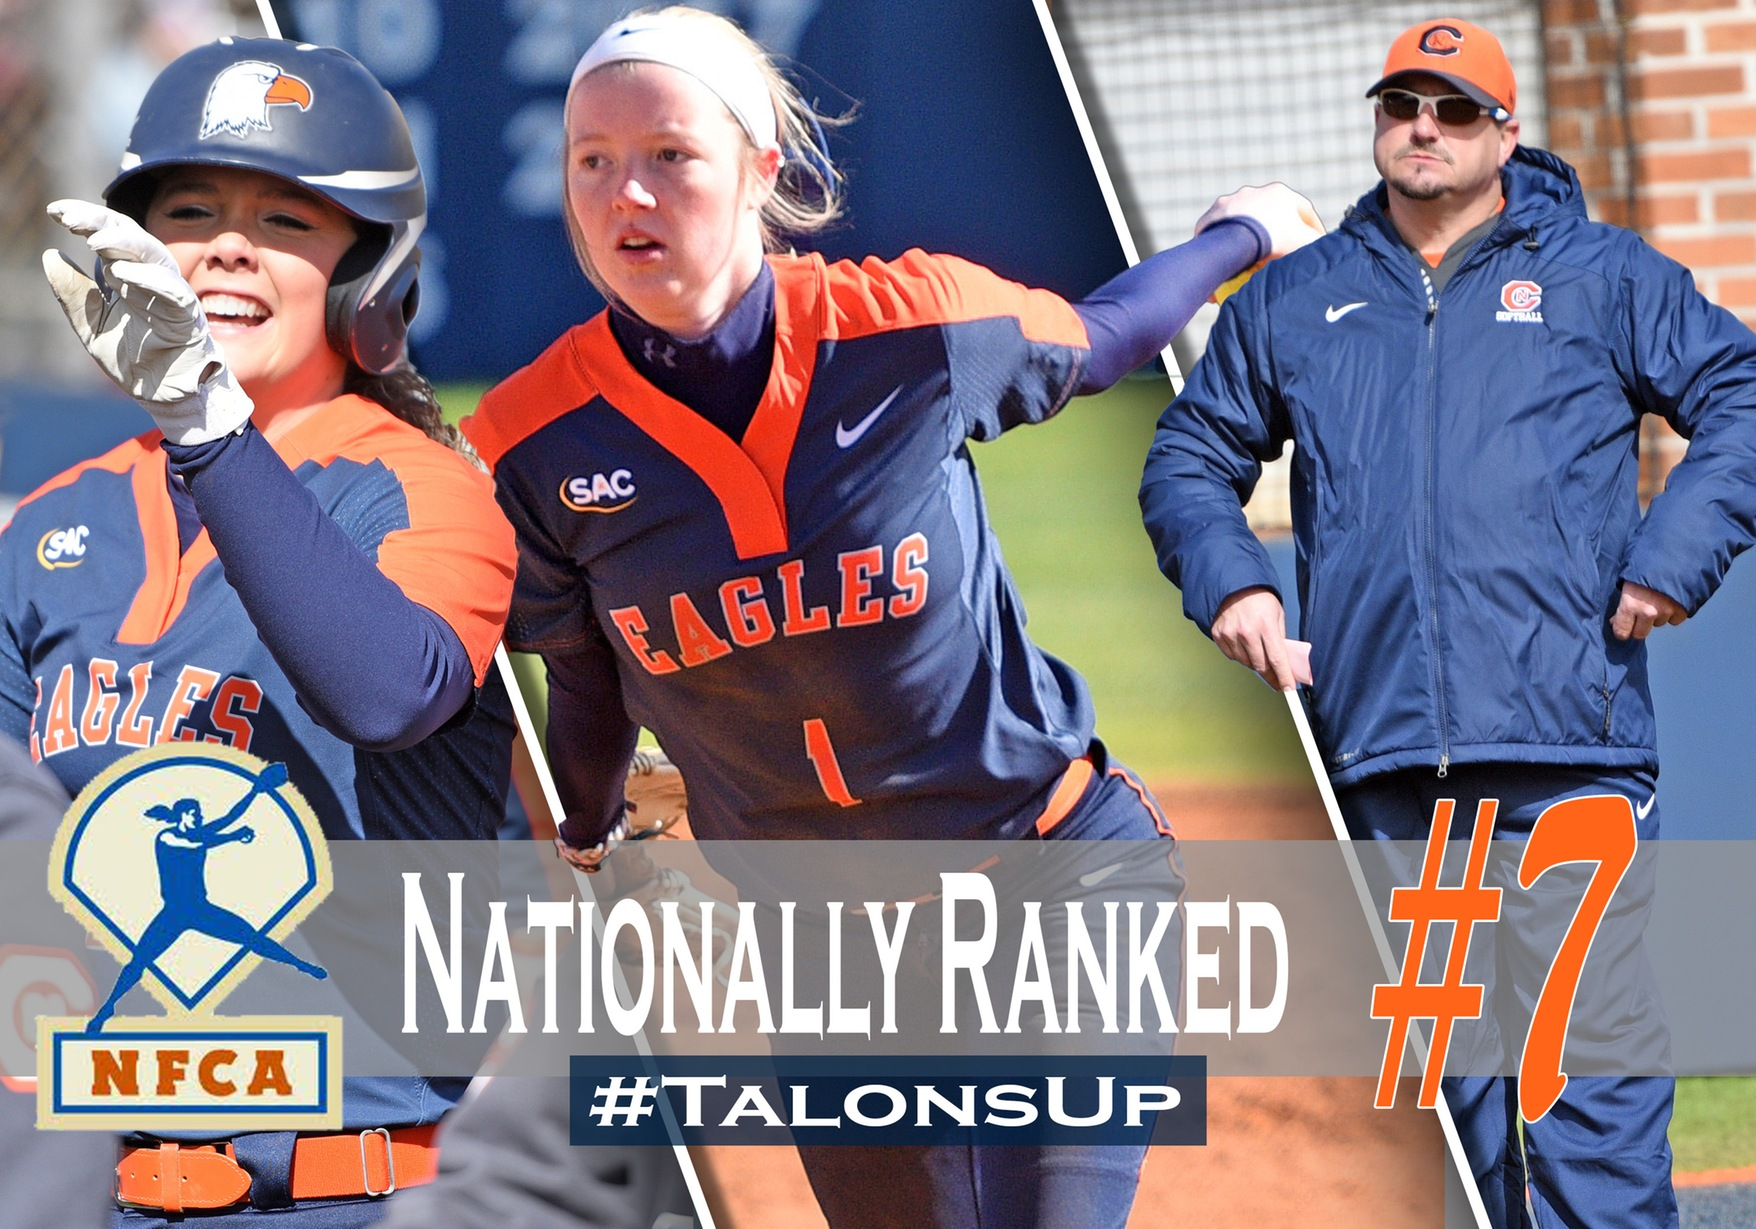 Eagles vault into NFCA Top 10, attain second highest NCAA ranking in program history